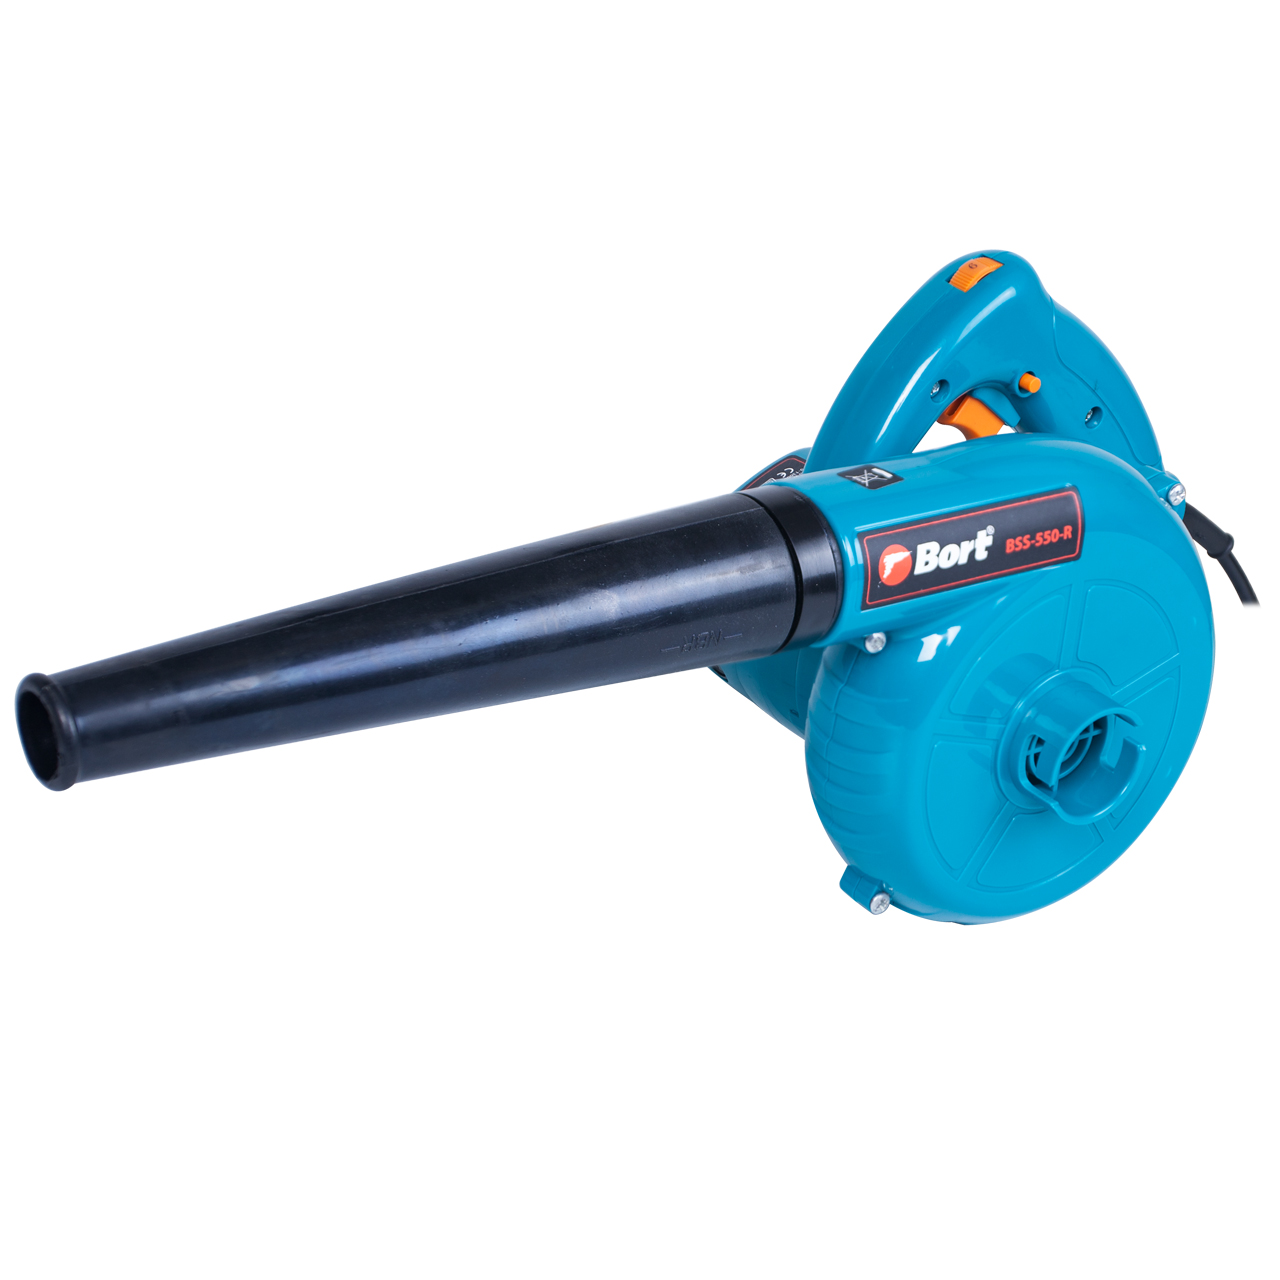 Vacuum cleaner electric BORT BSS-550-R (Blower)